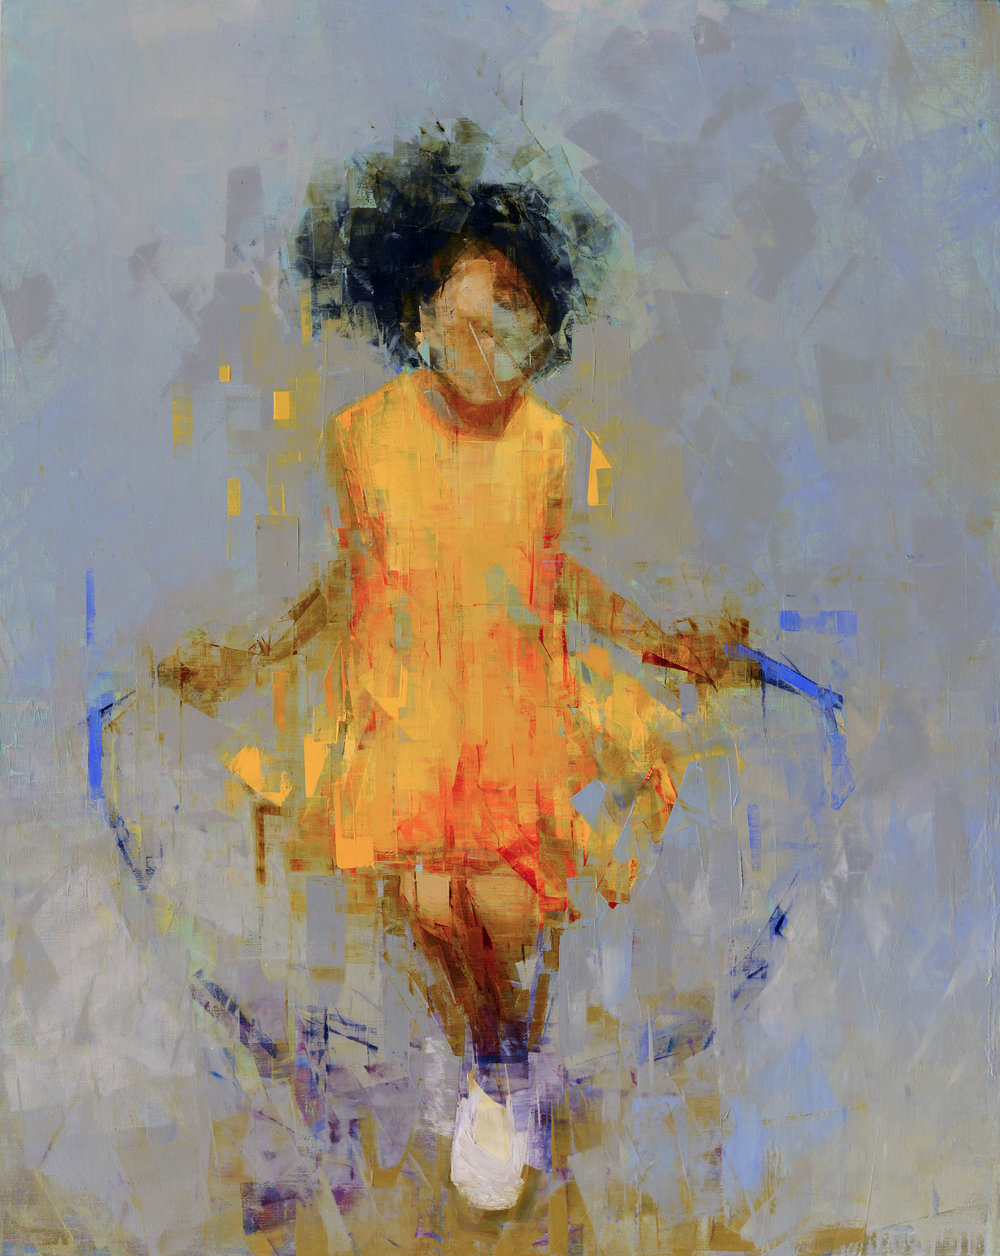 JUMP (GREY AND GOLD)   -PRIVATE COLLECTION-  60 x 48 inches  oil and wax on linen